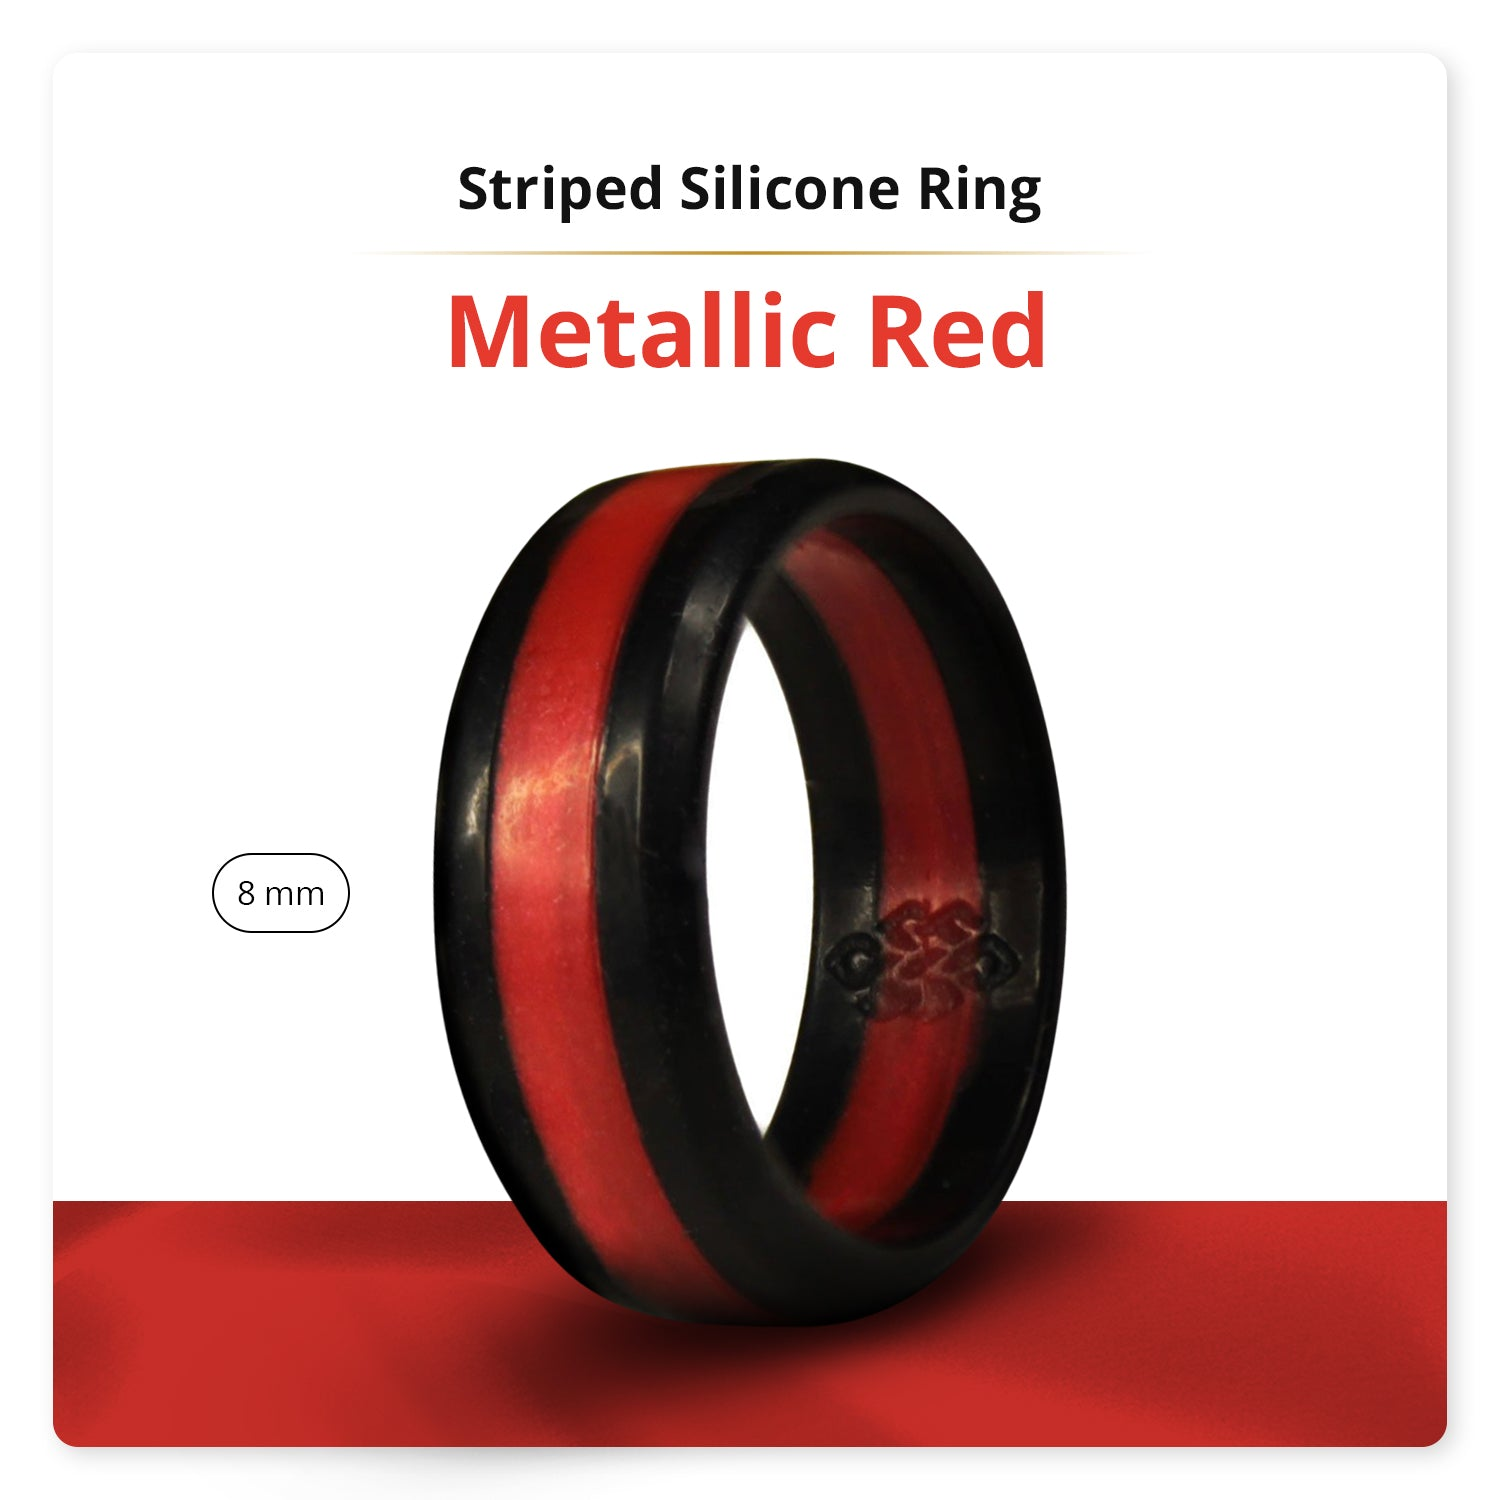 Red Metallic Striped Silicone Ring Man